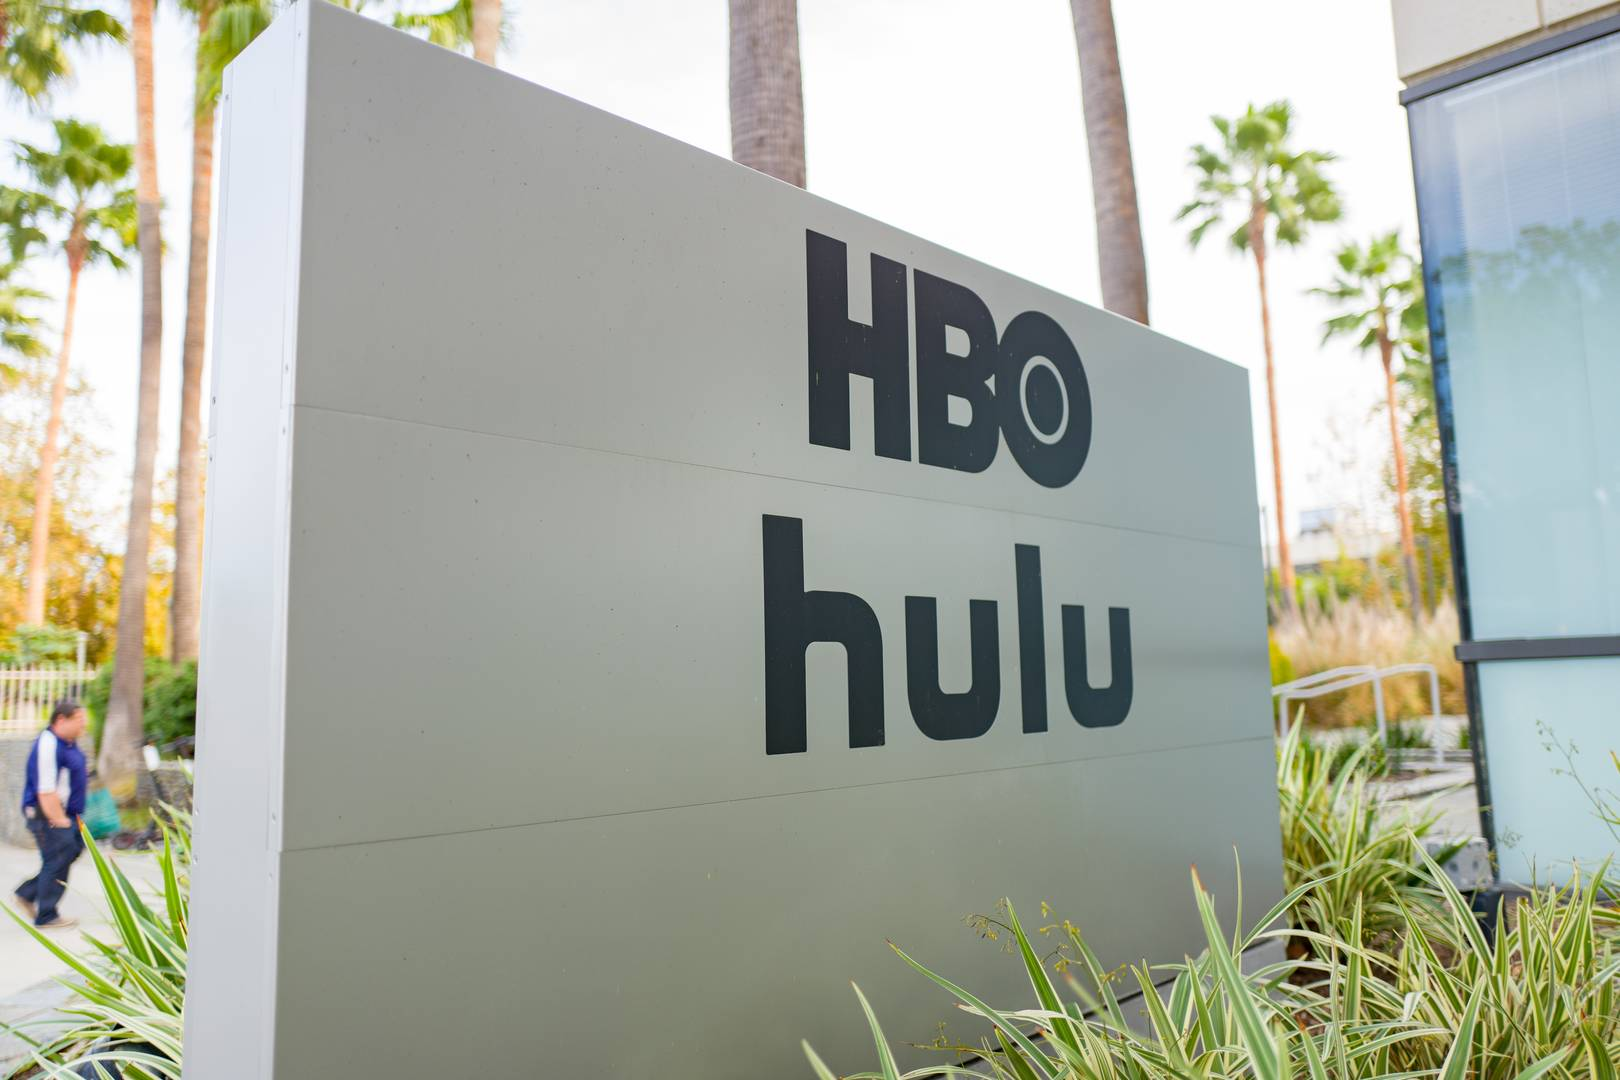 Hulu's Black Friday Deal Offers Crazy Cheap Year-Long Subscription At $1.99 A Month For A Year